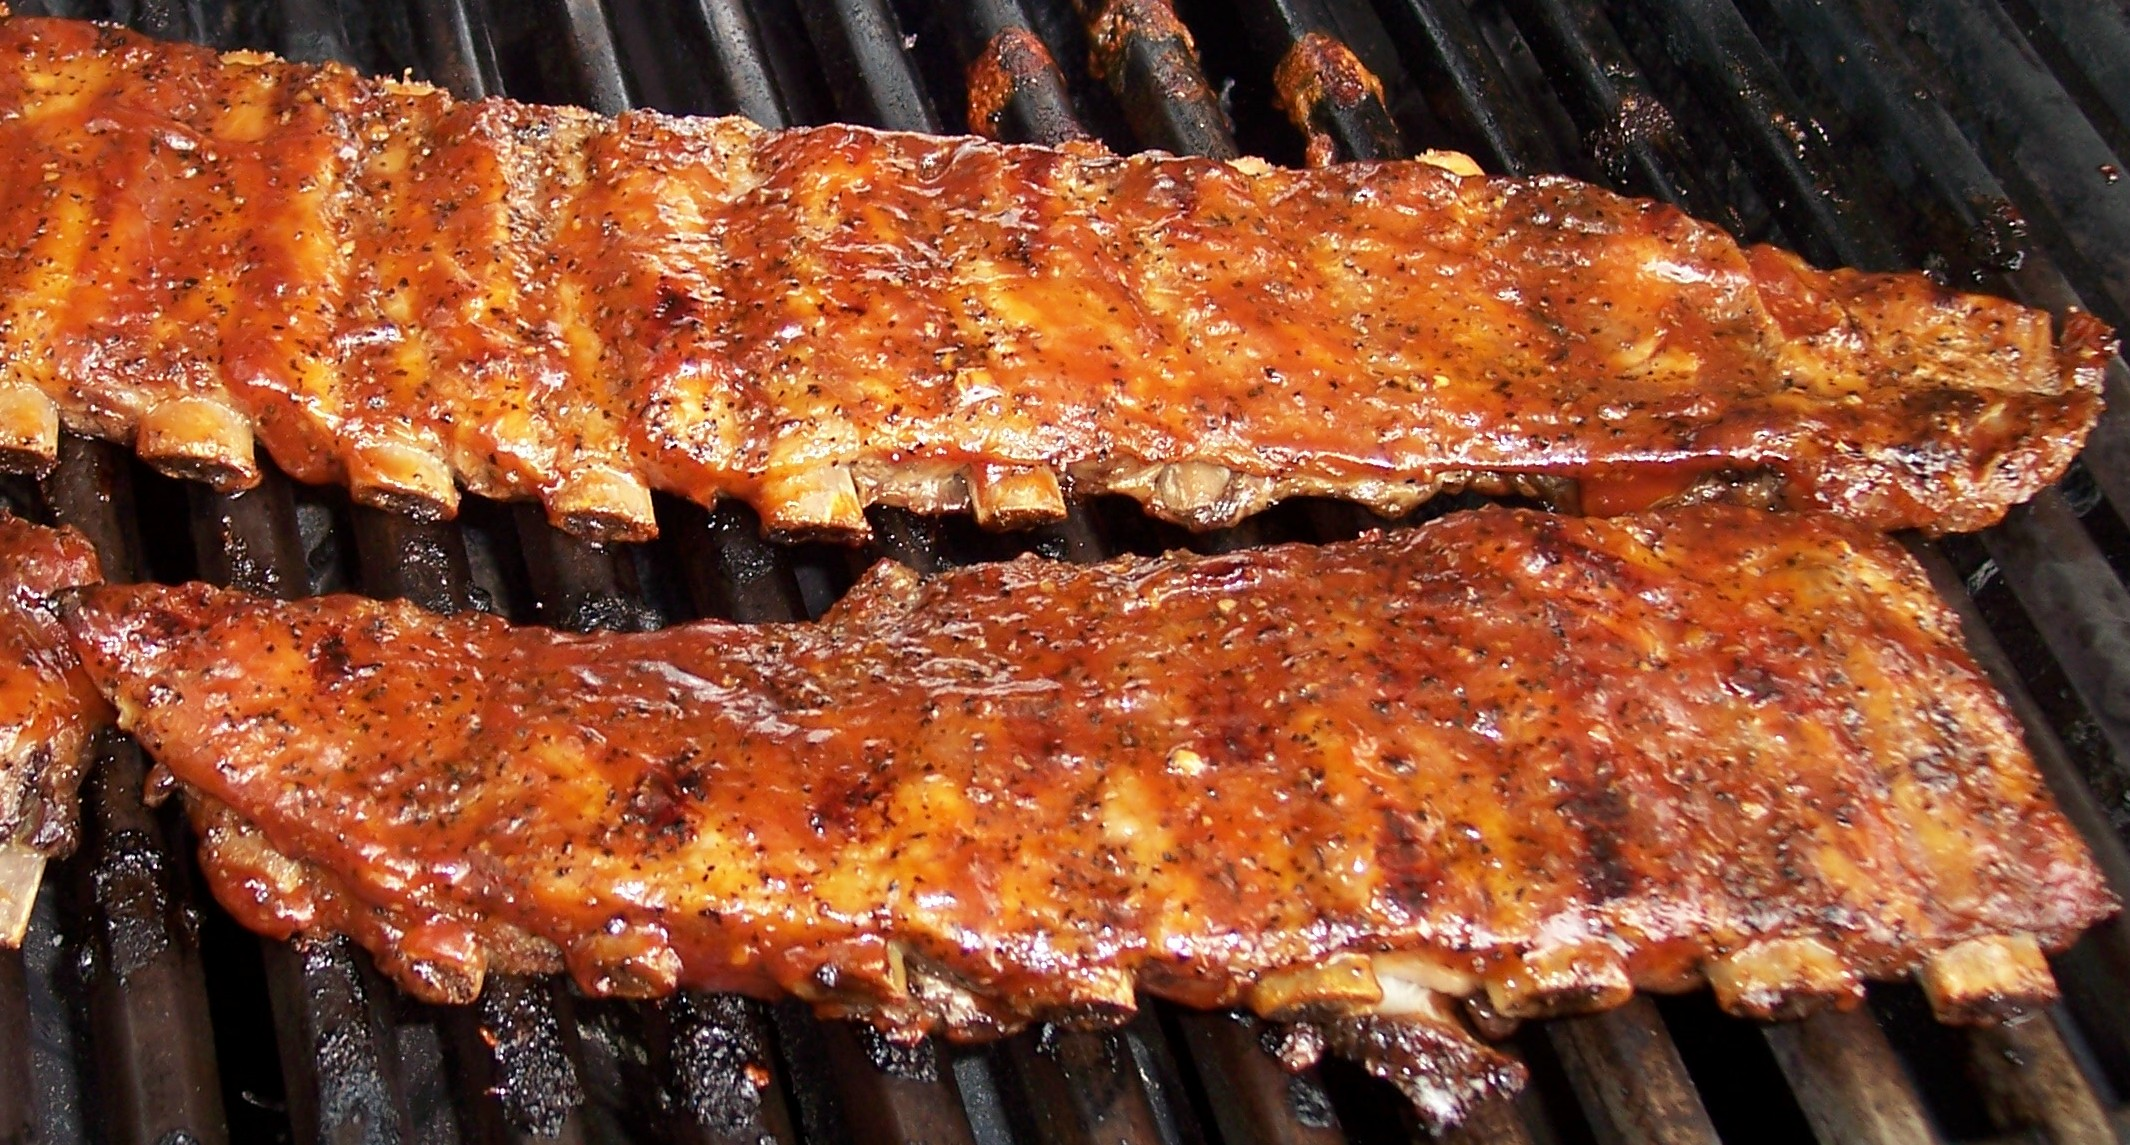 Ribs My Way